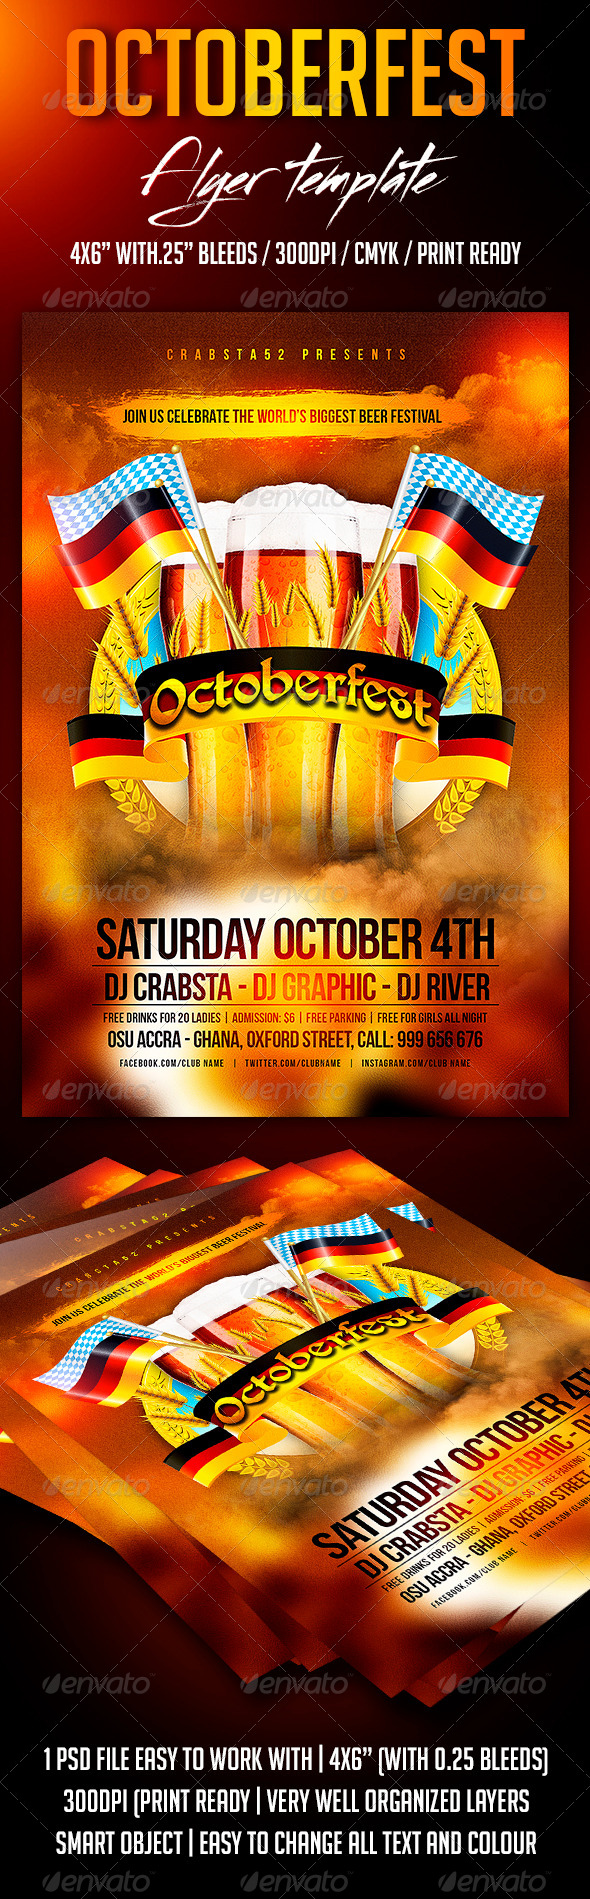 GraphicRiver Octoberfest Flyer Template 8683284